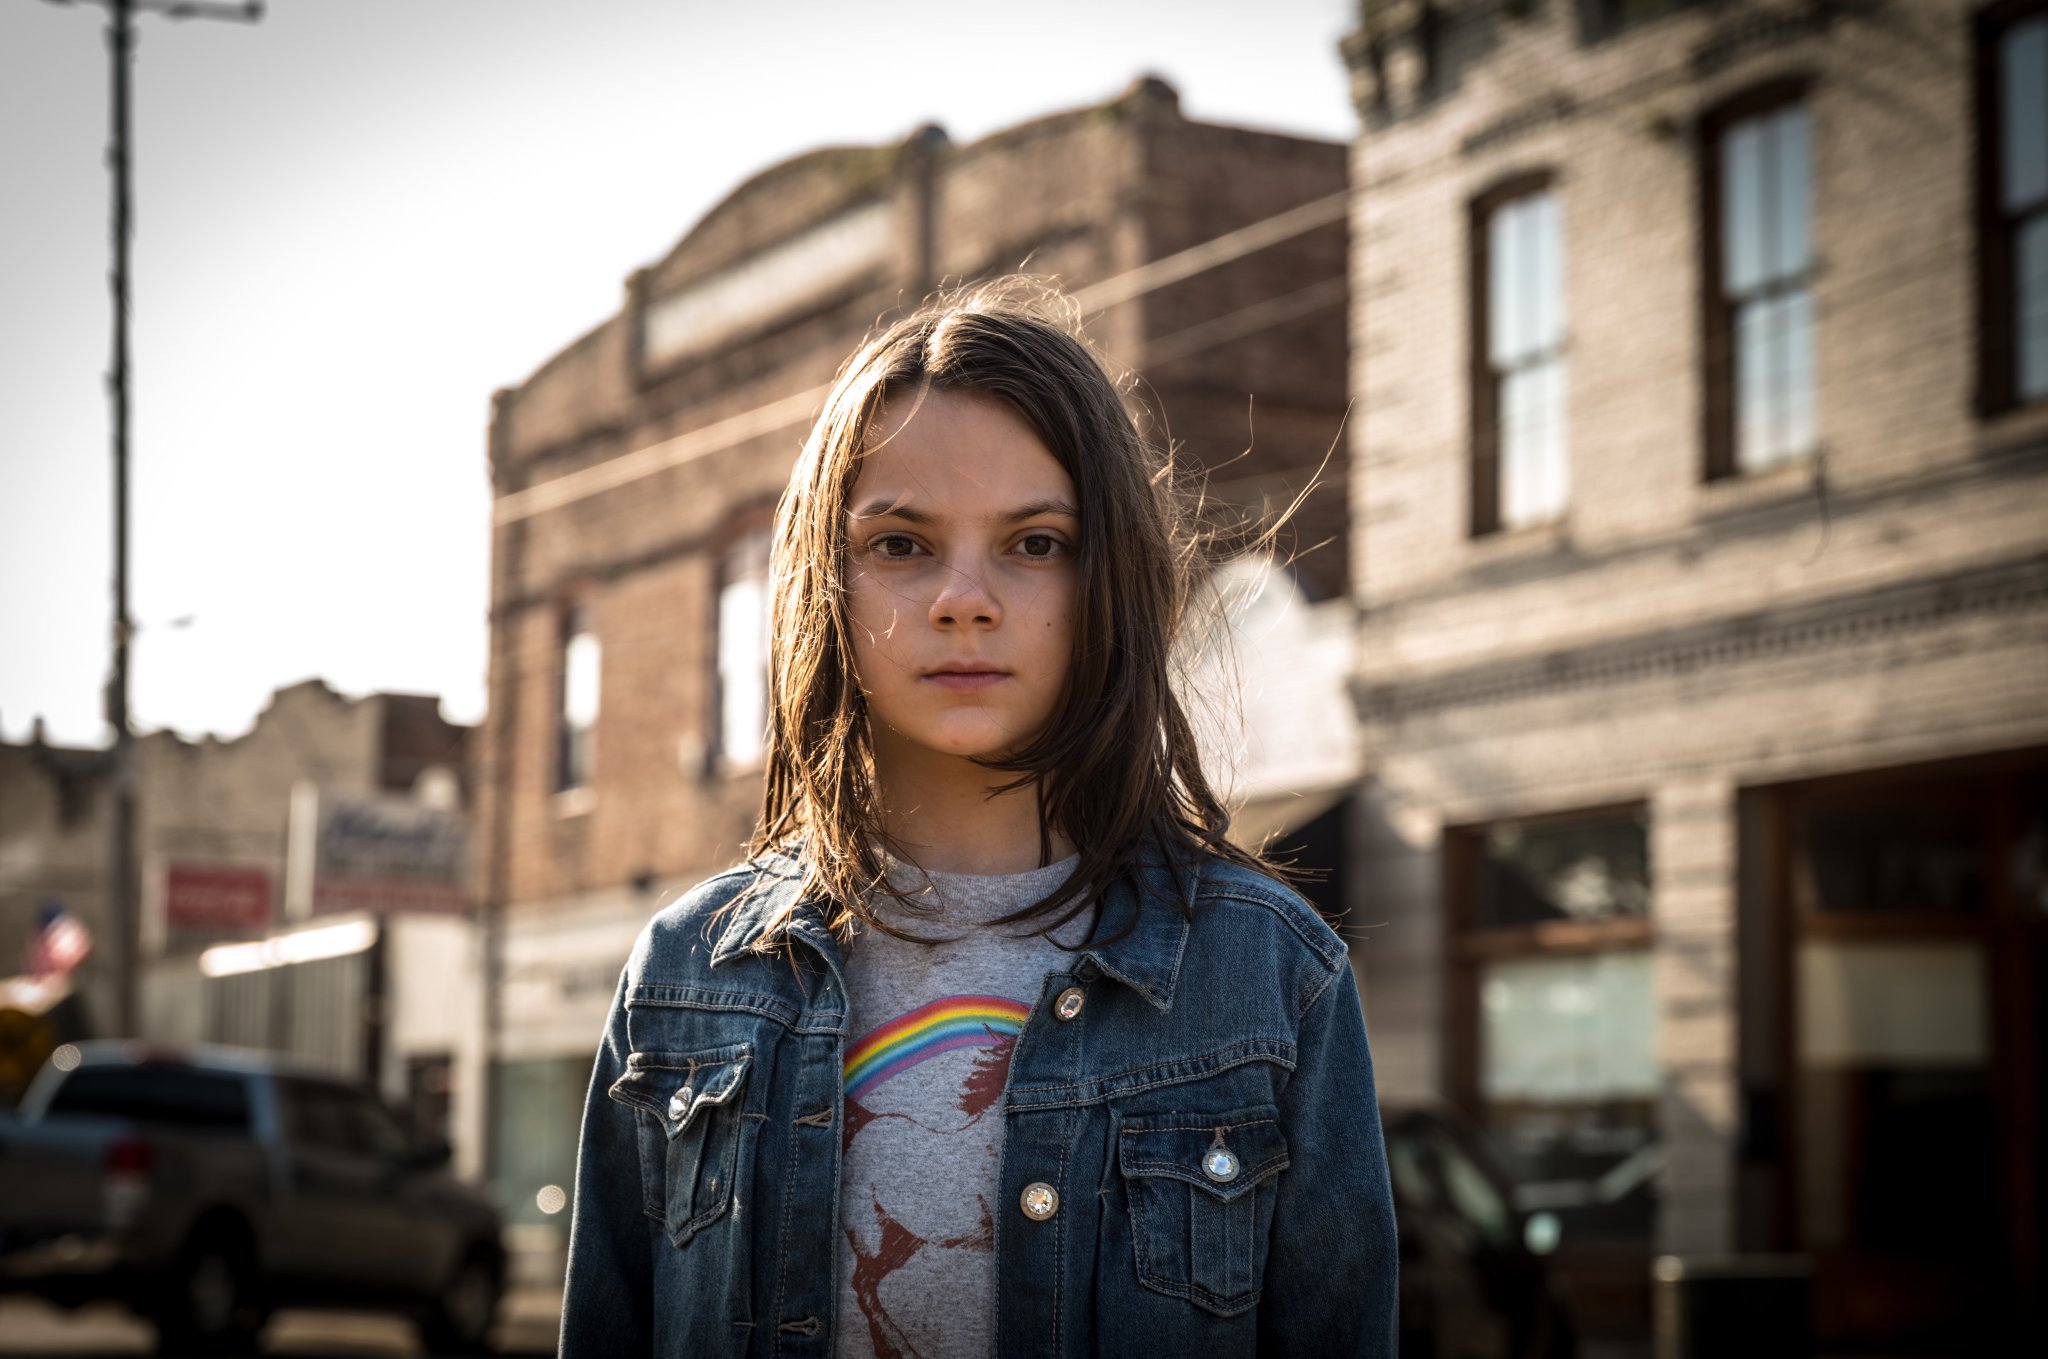 'Logan' Spin-Off Starring X-23 In the Works From Director James Mangold